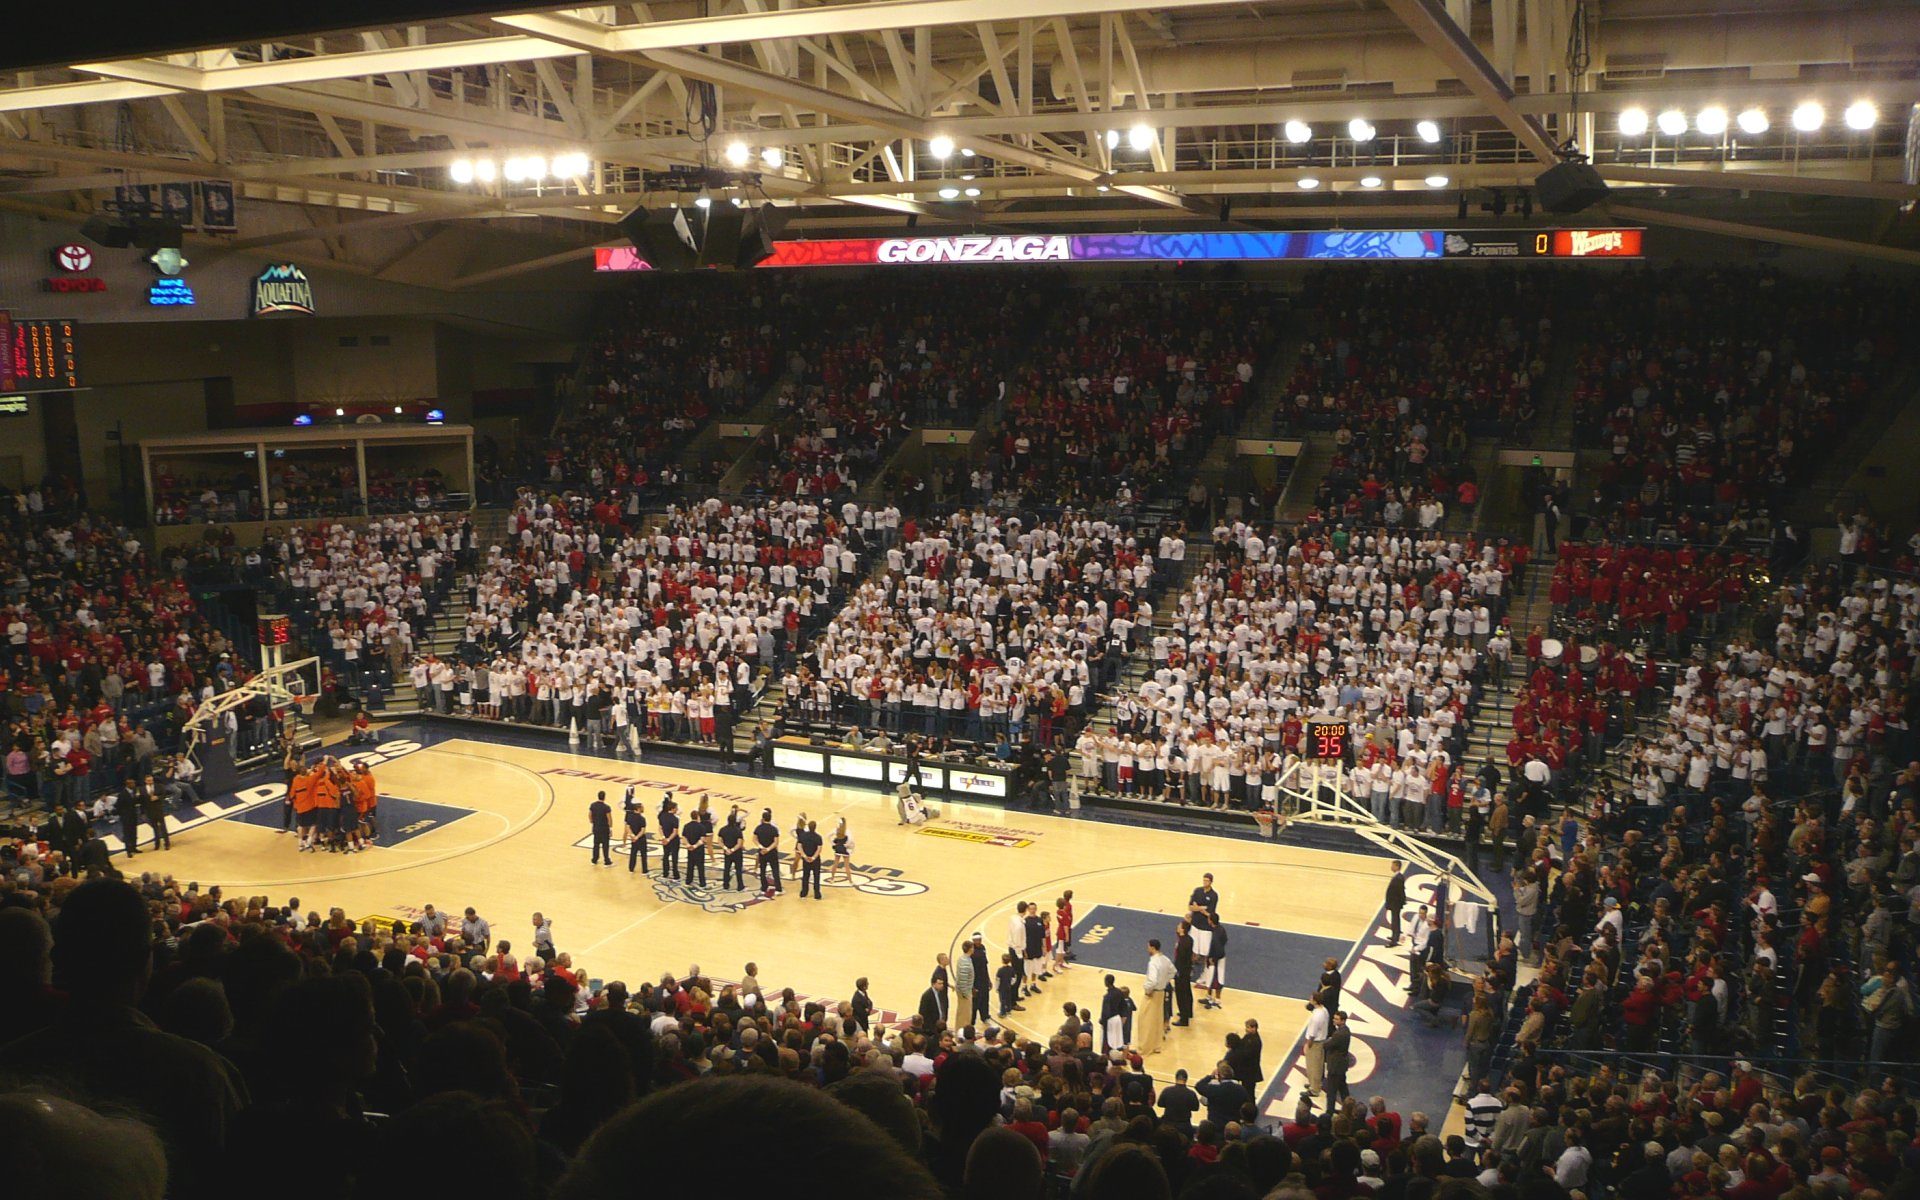 West Coast Conference College Basketball Arena Wallpapers